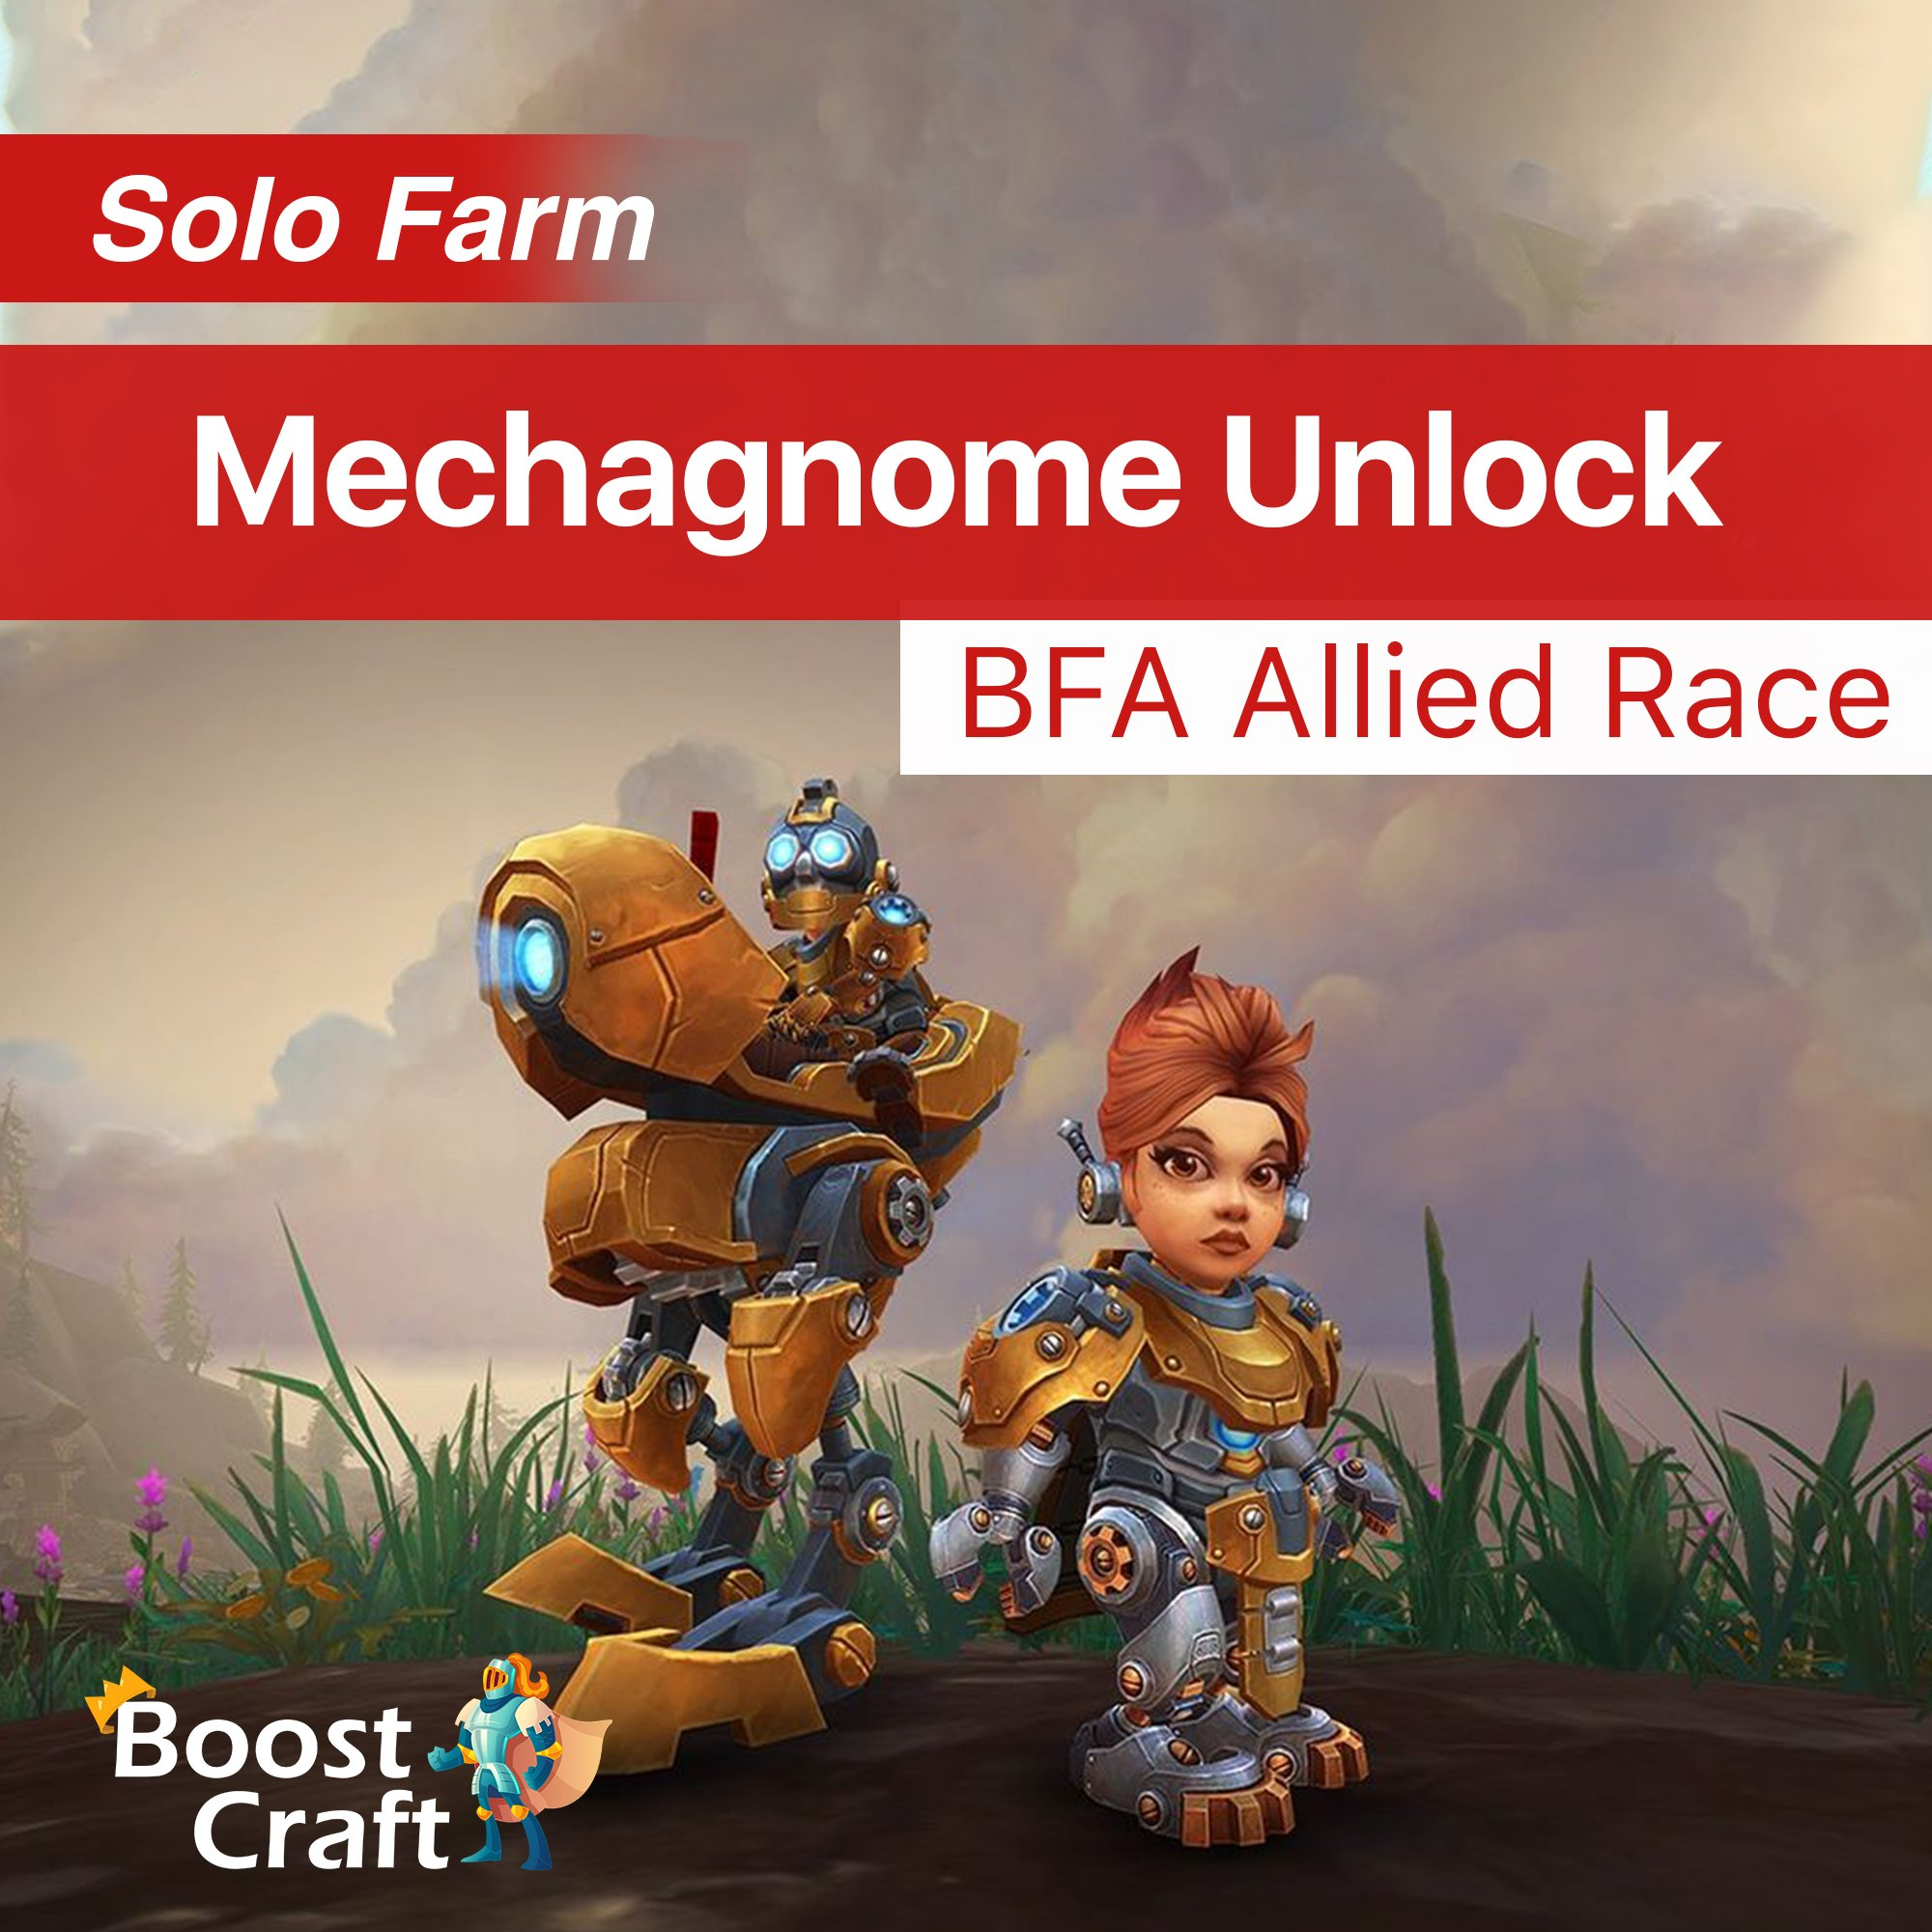 Mechagnome race BFA Allied Race – Unlock Service